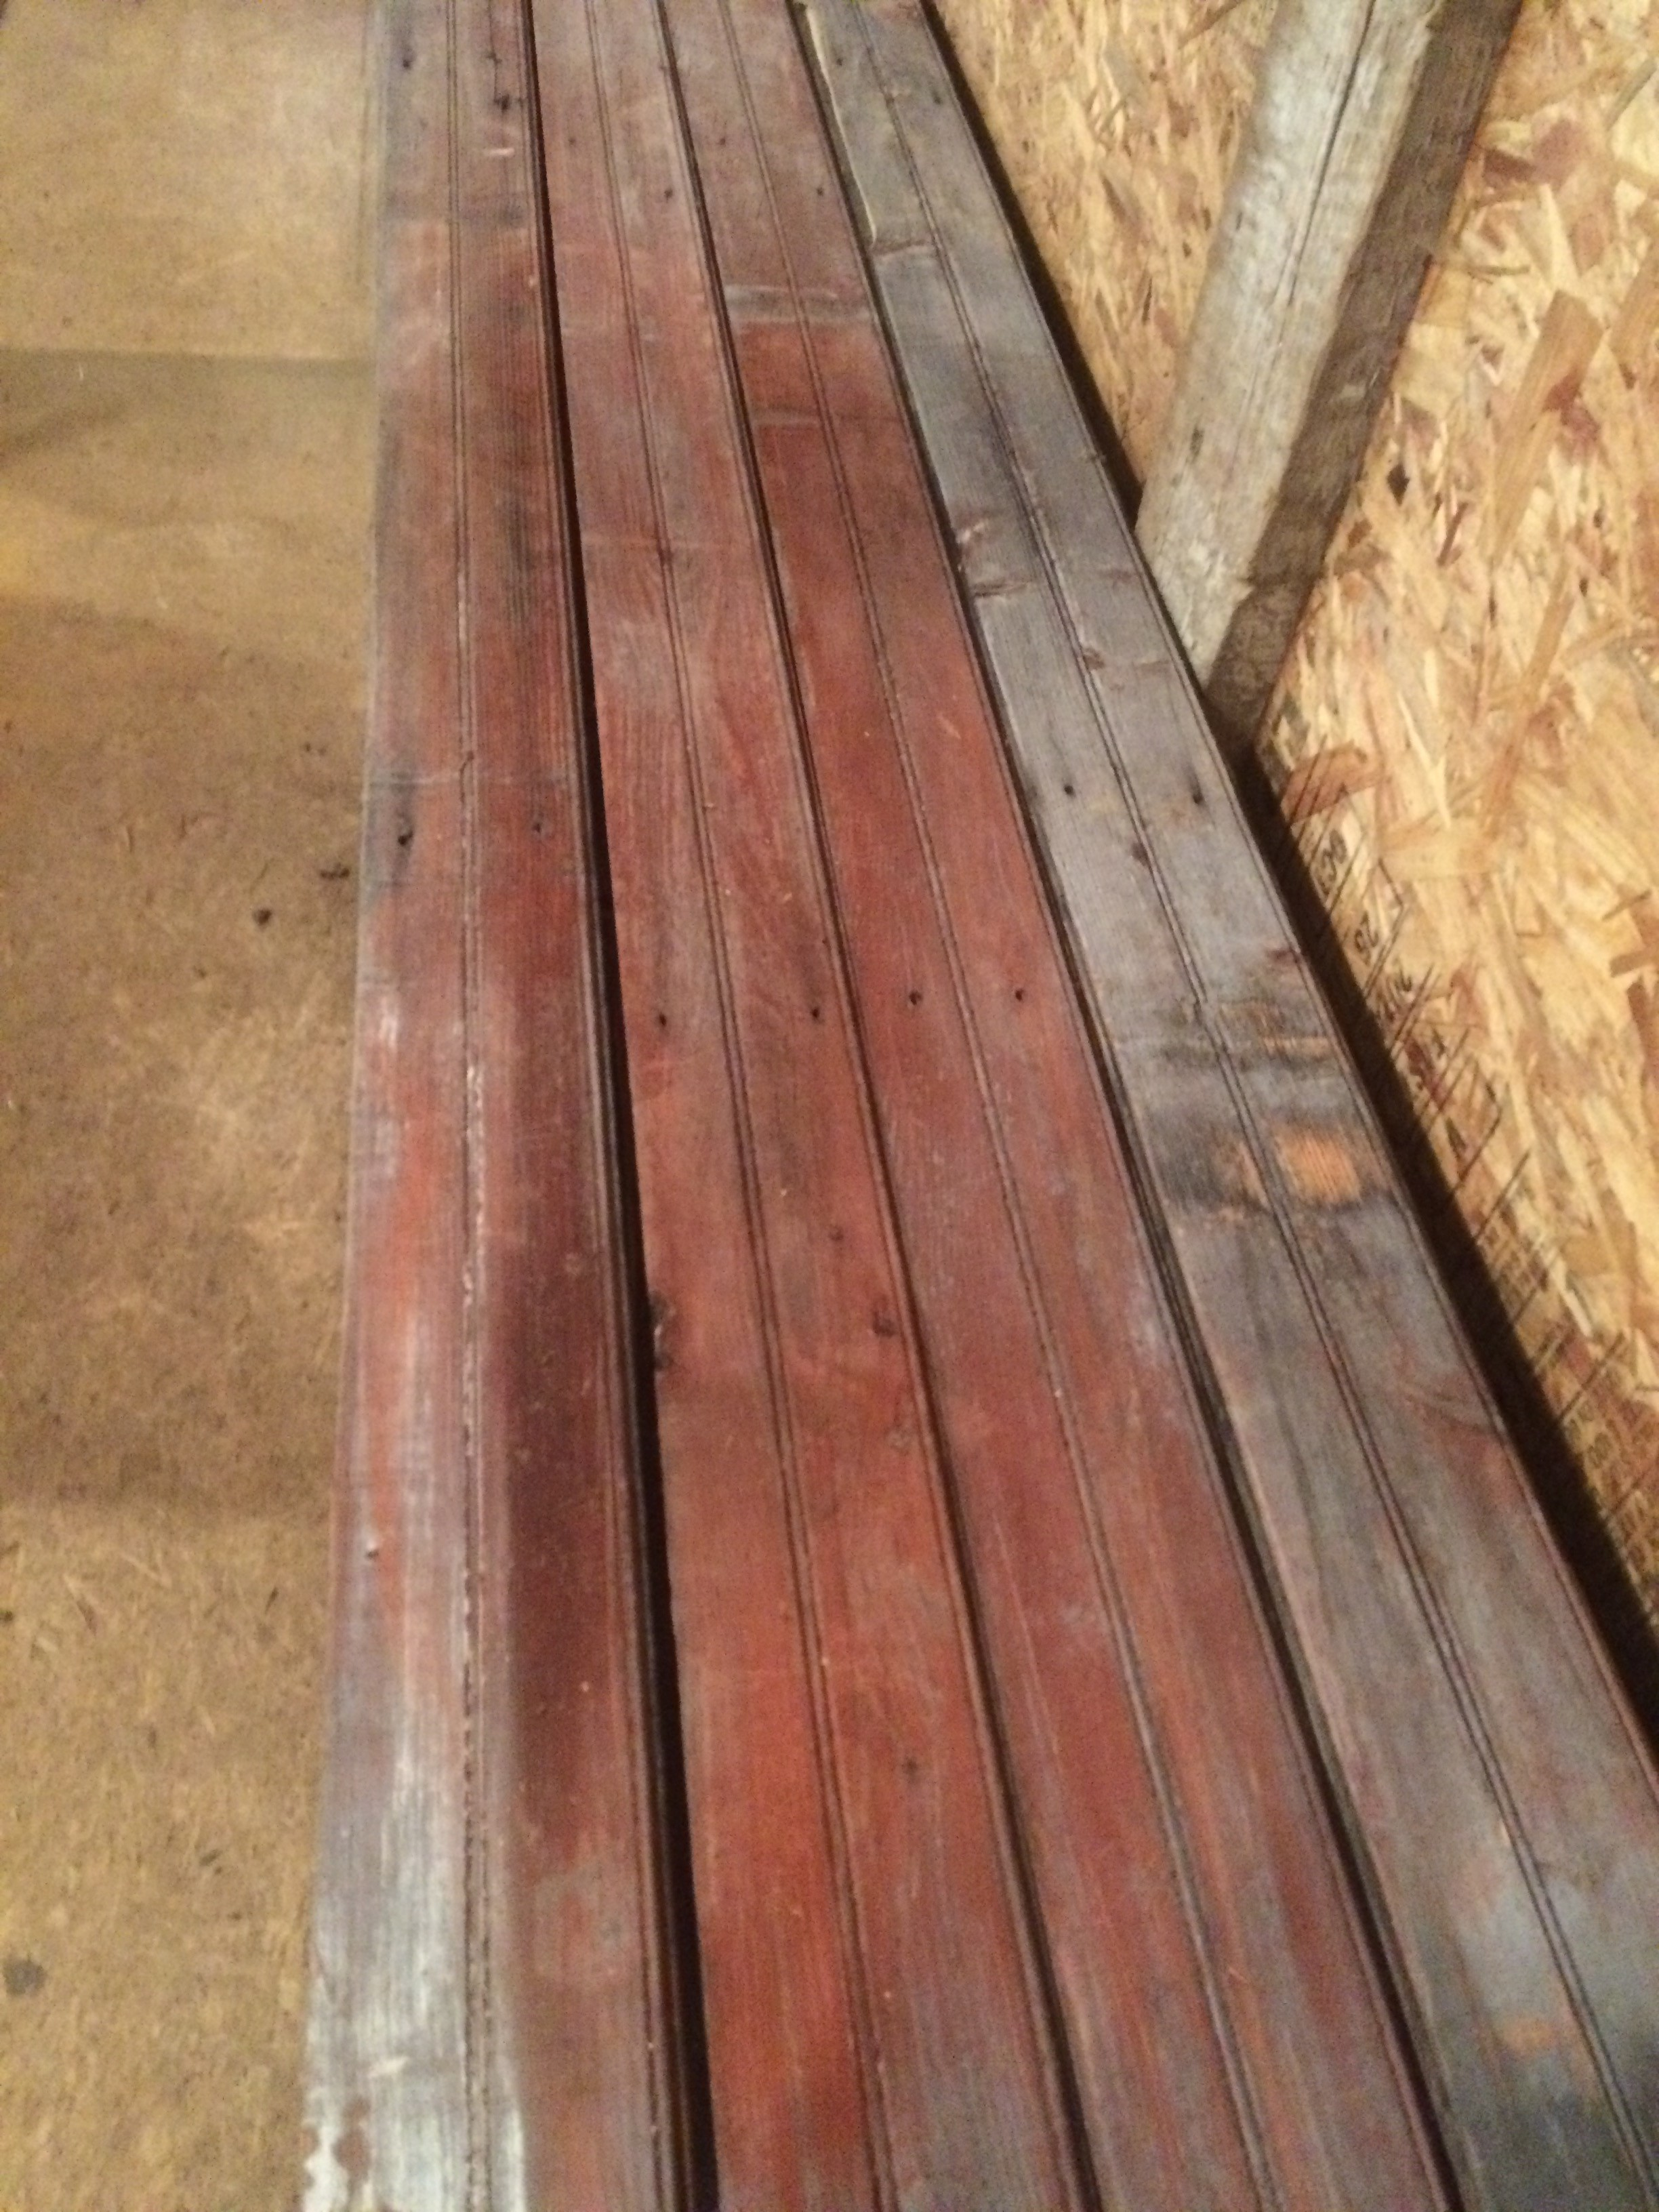 hewn hand barn products old grain barns reclaimed skins and img wood lumber